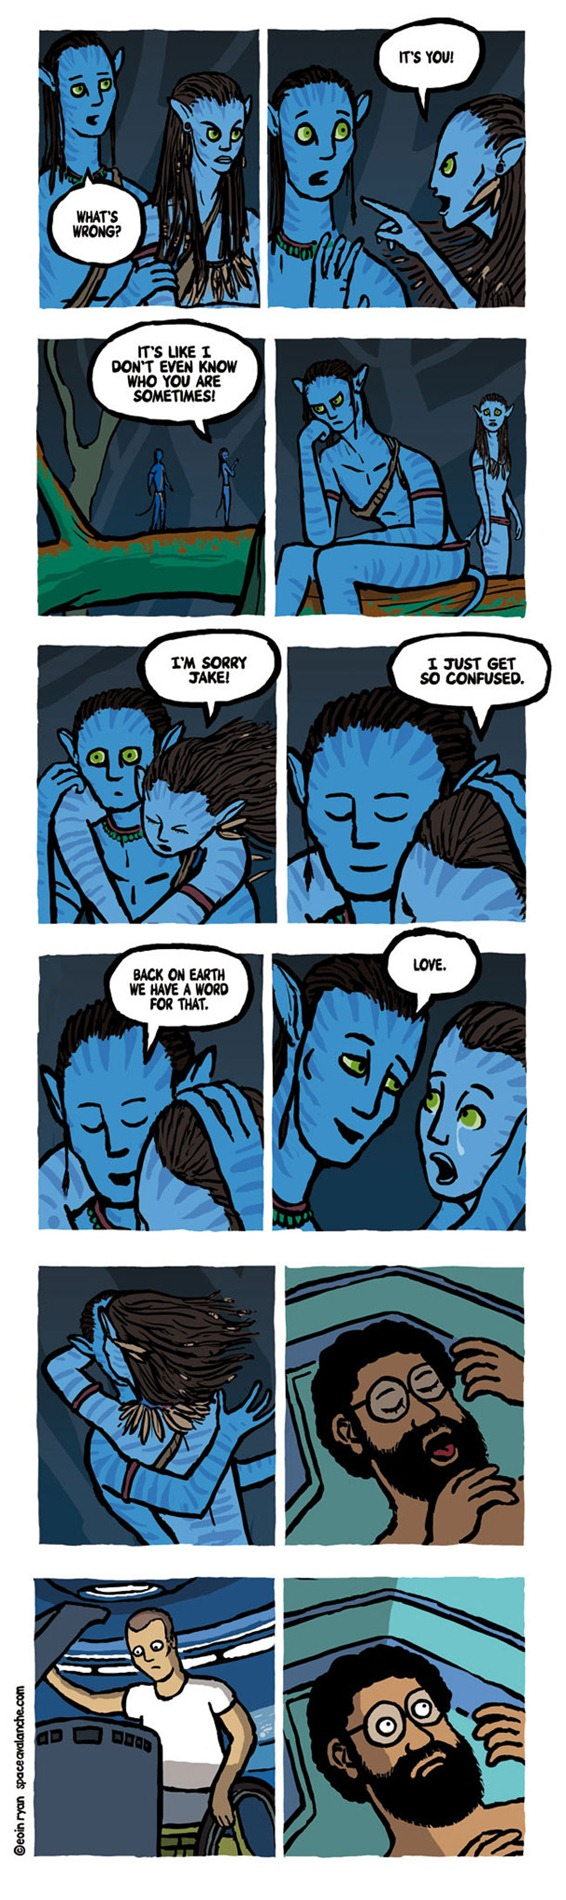 Avatars Awkward Deleted Scene New Deleted Scene from Avatar [Comic]